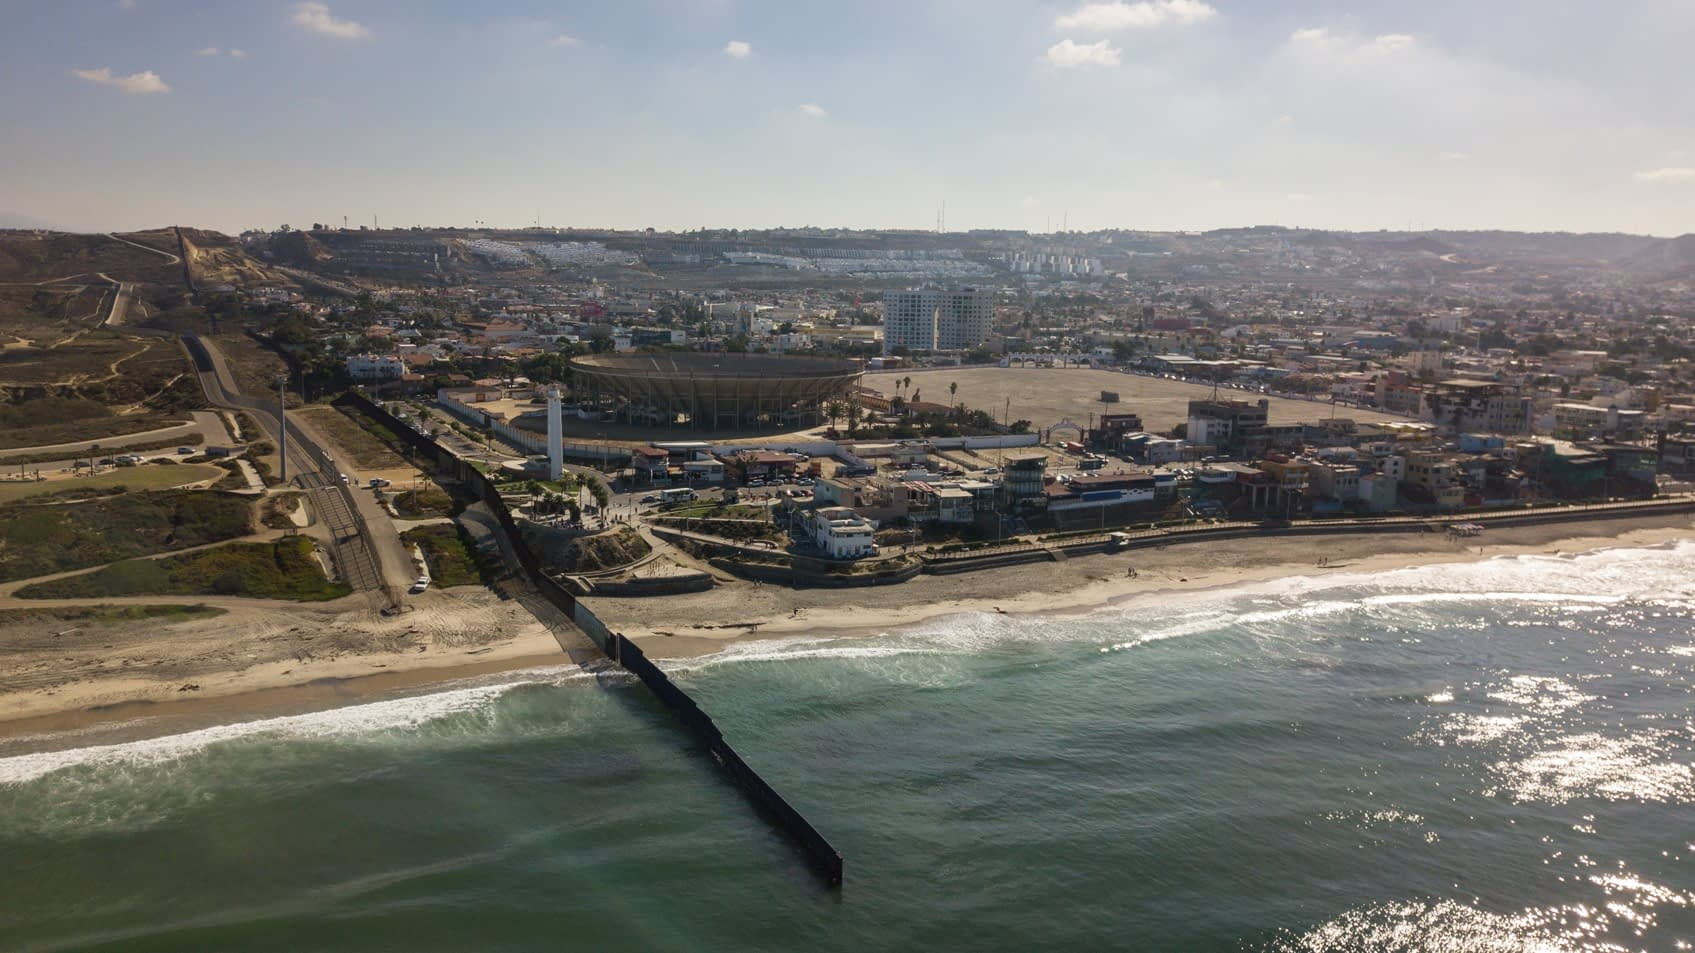 US$300 MM from USMCA to Clean-up Tijuana River Valley